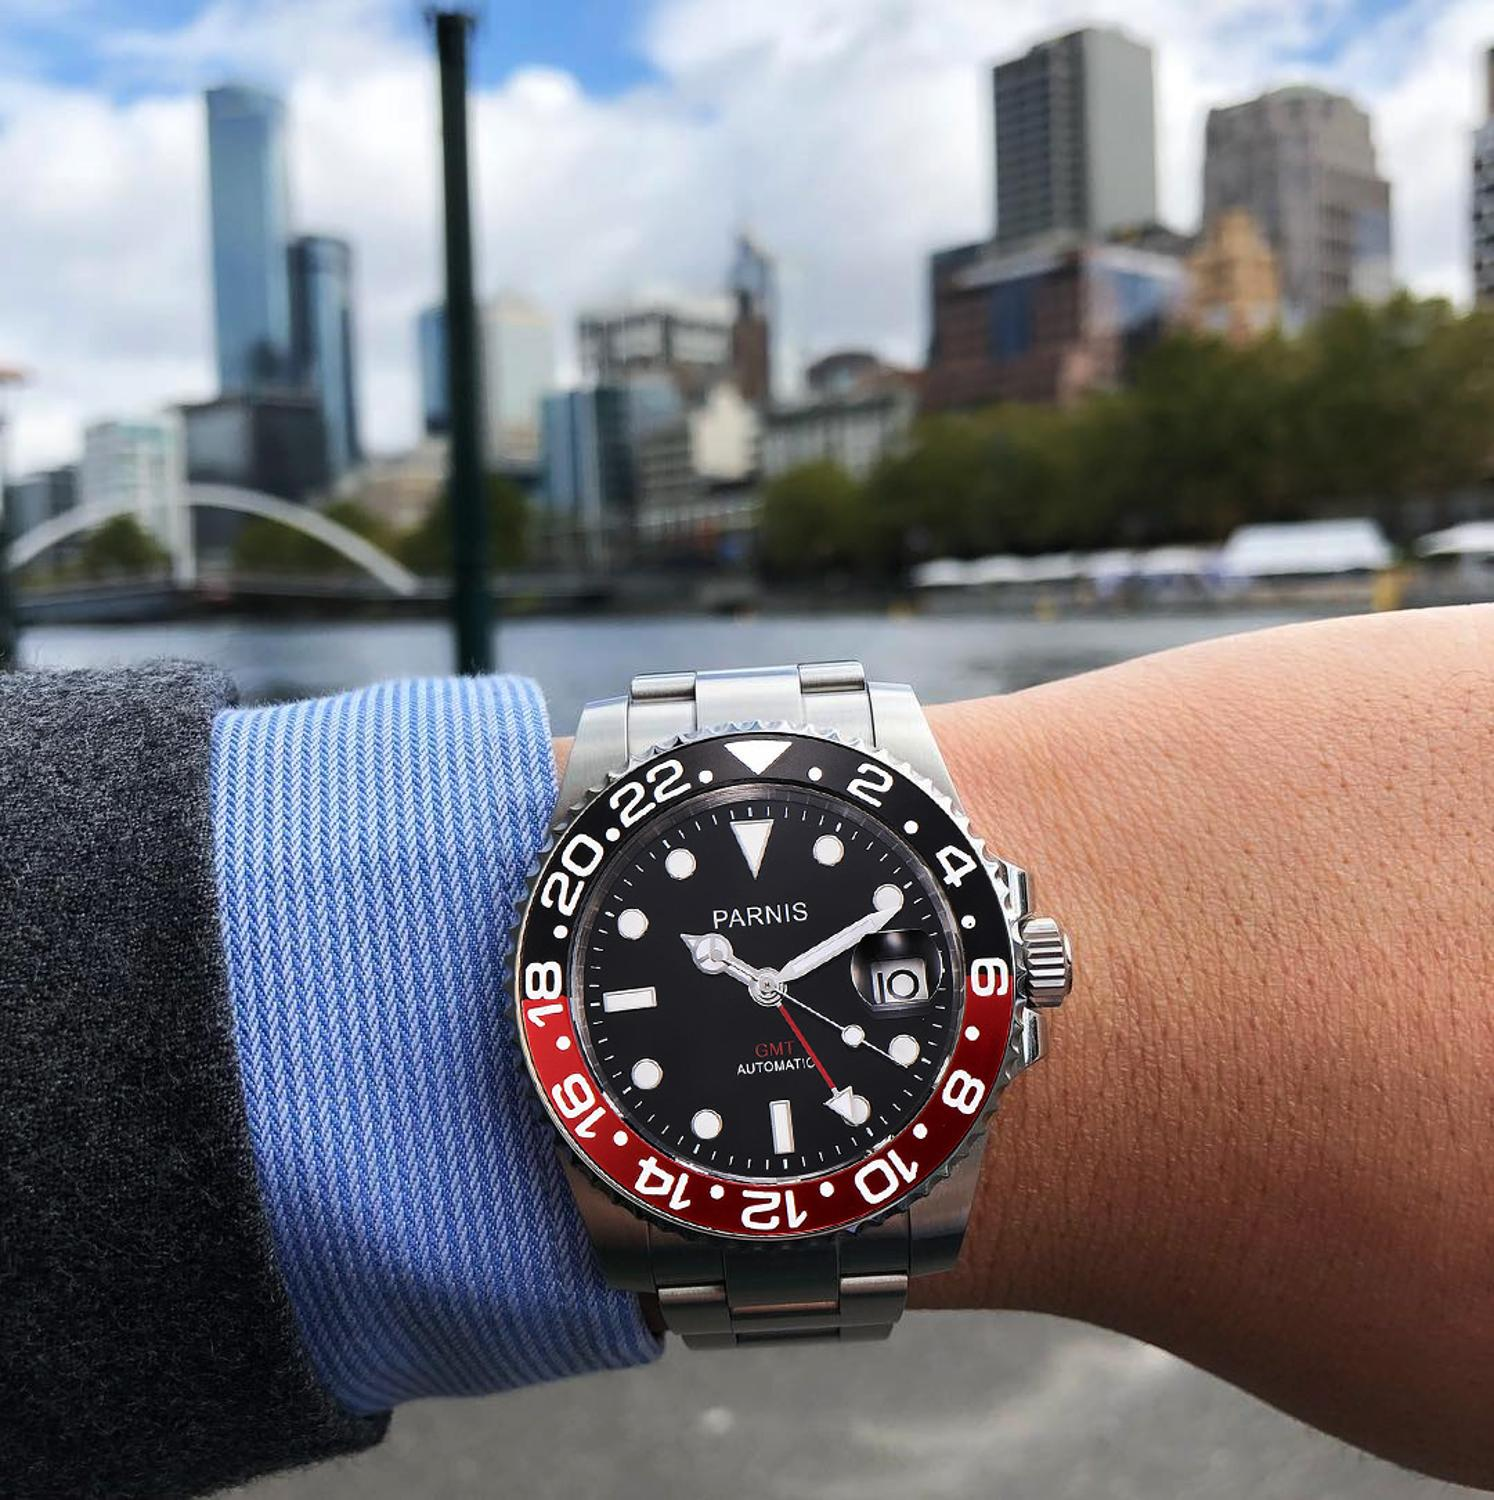 Parnis 40mm Mechanical Automatic Men Watches Stainless Steel Bracelet Sapphire Crystal Diver Men's Watch jam tangan pria 2019